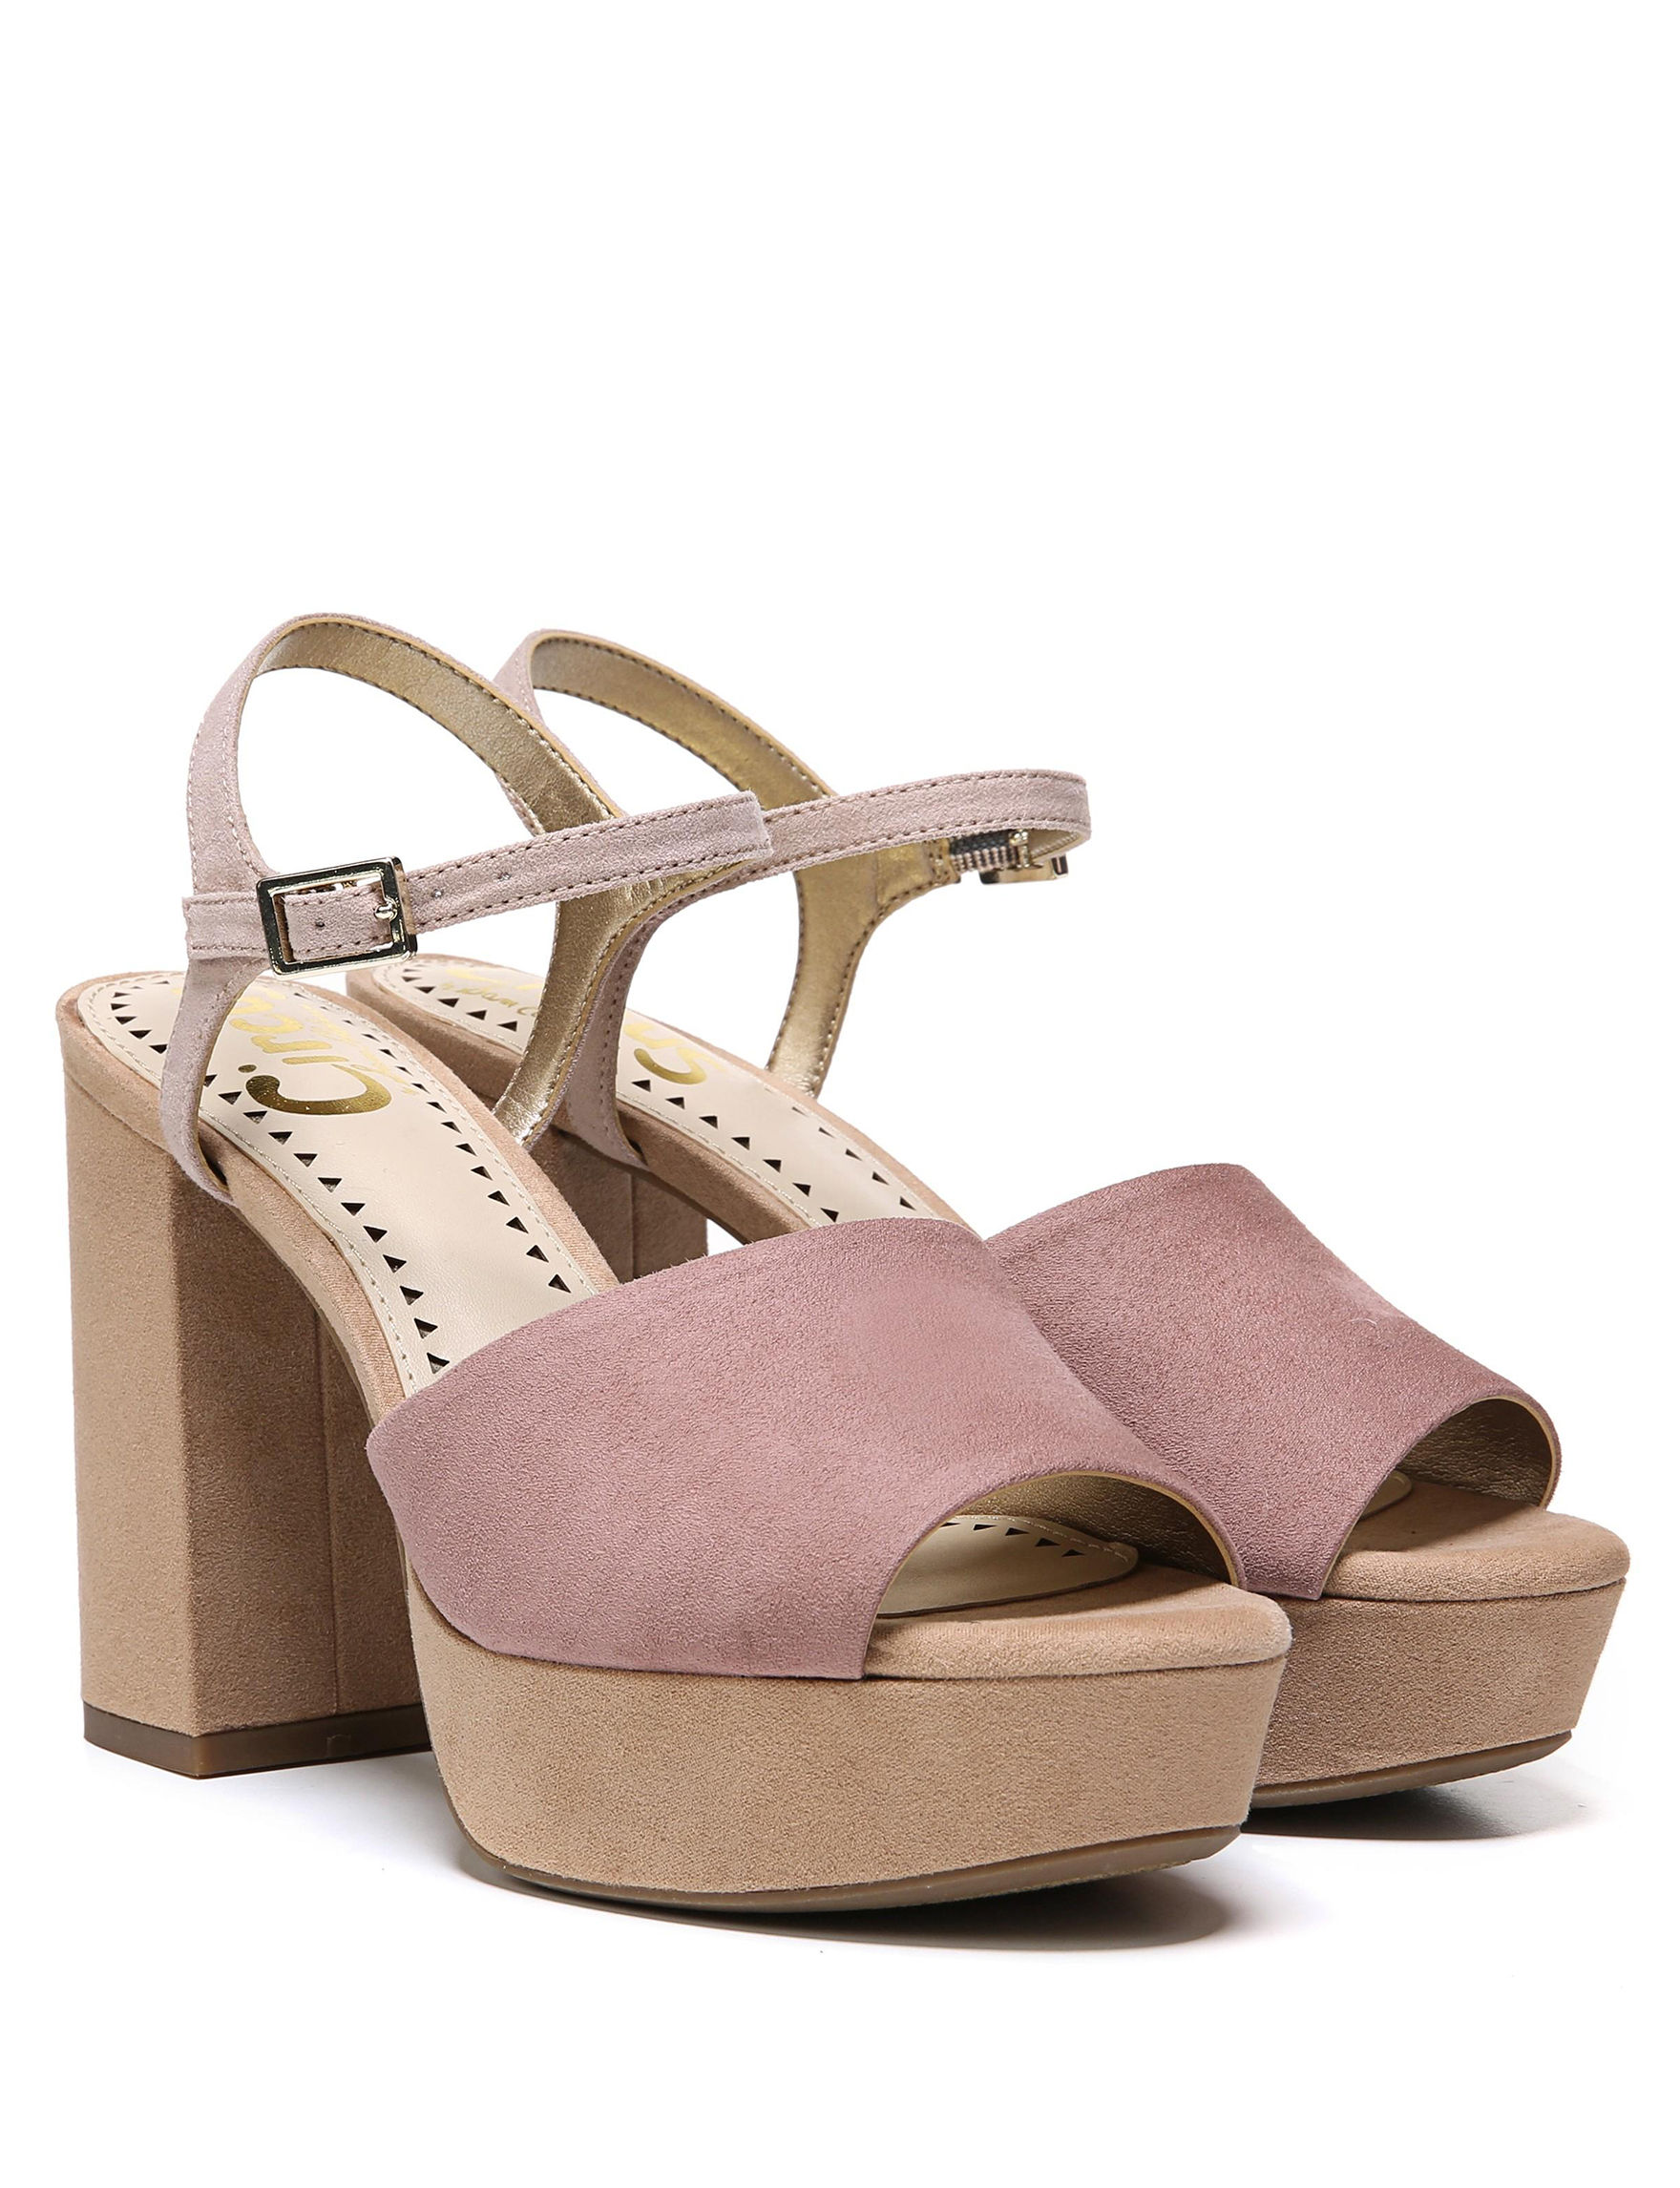 Circus By Sam Edelman Rose Heeled Sandals